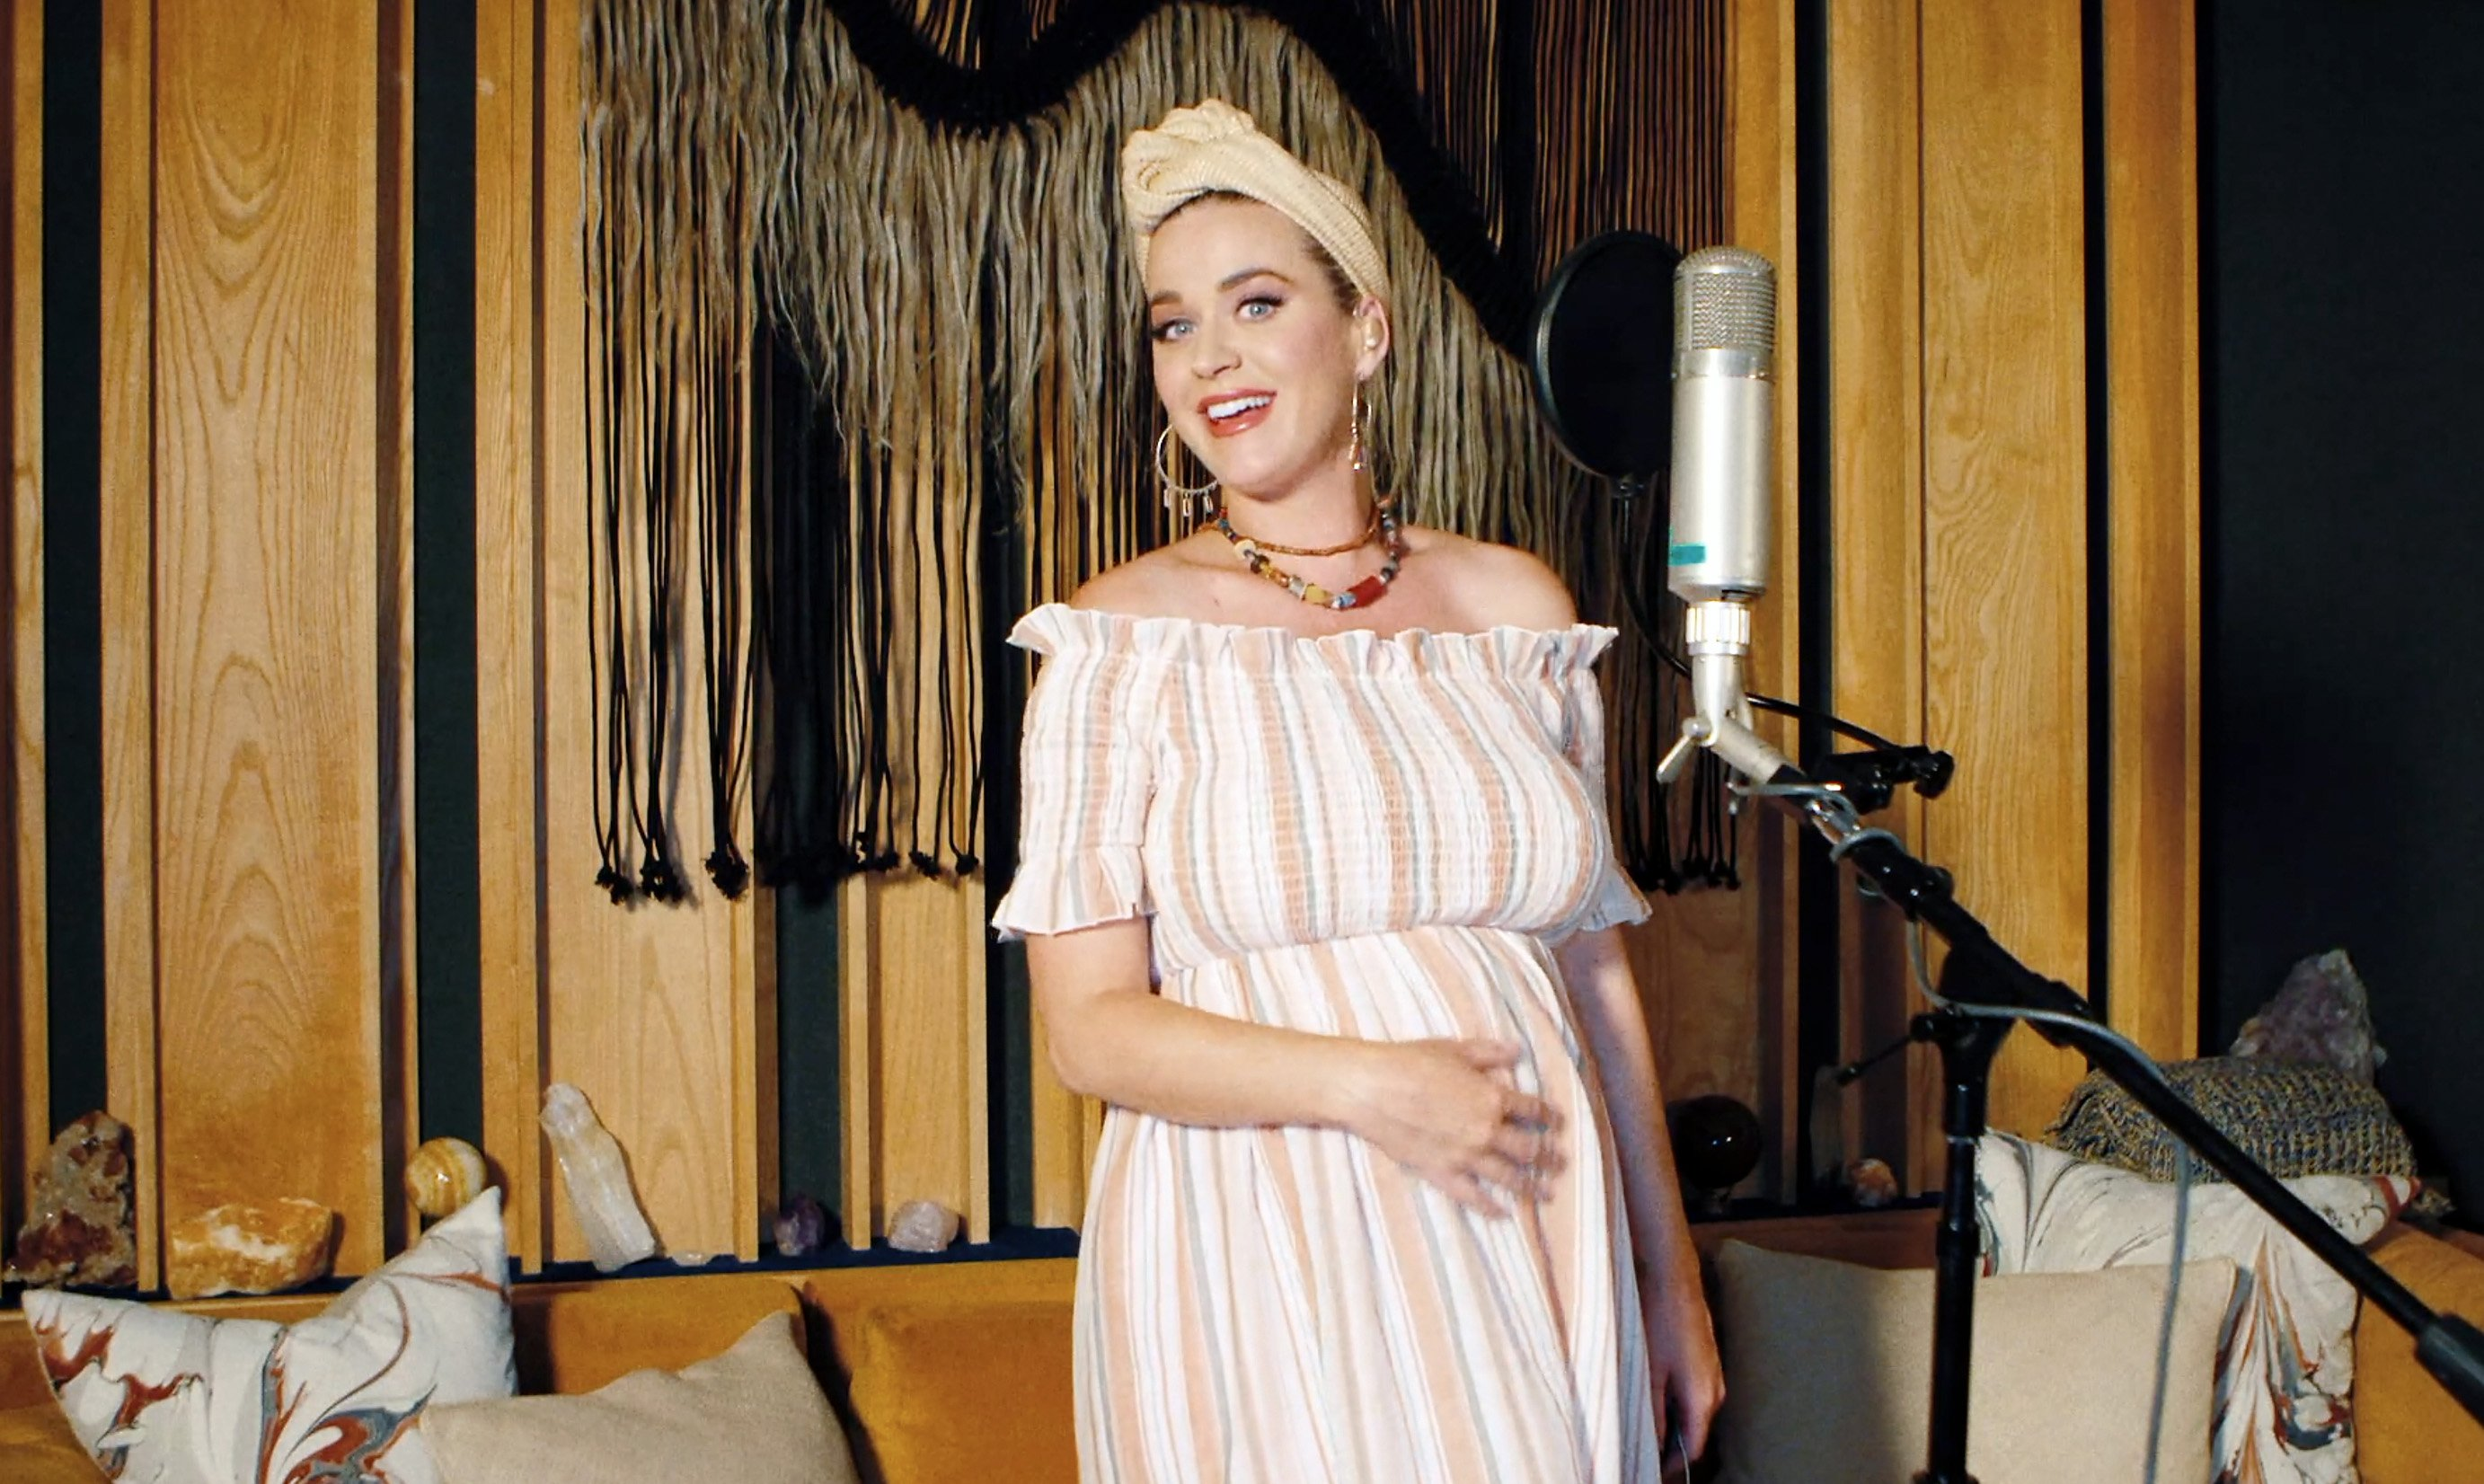 Katy Perry performs during SHEIN Together Virtual Festival on May 09, 2020. | Source: Getty Images.